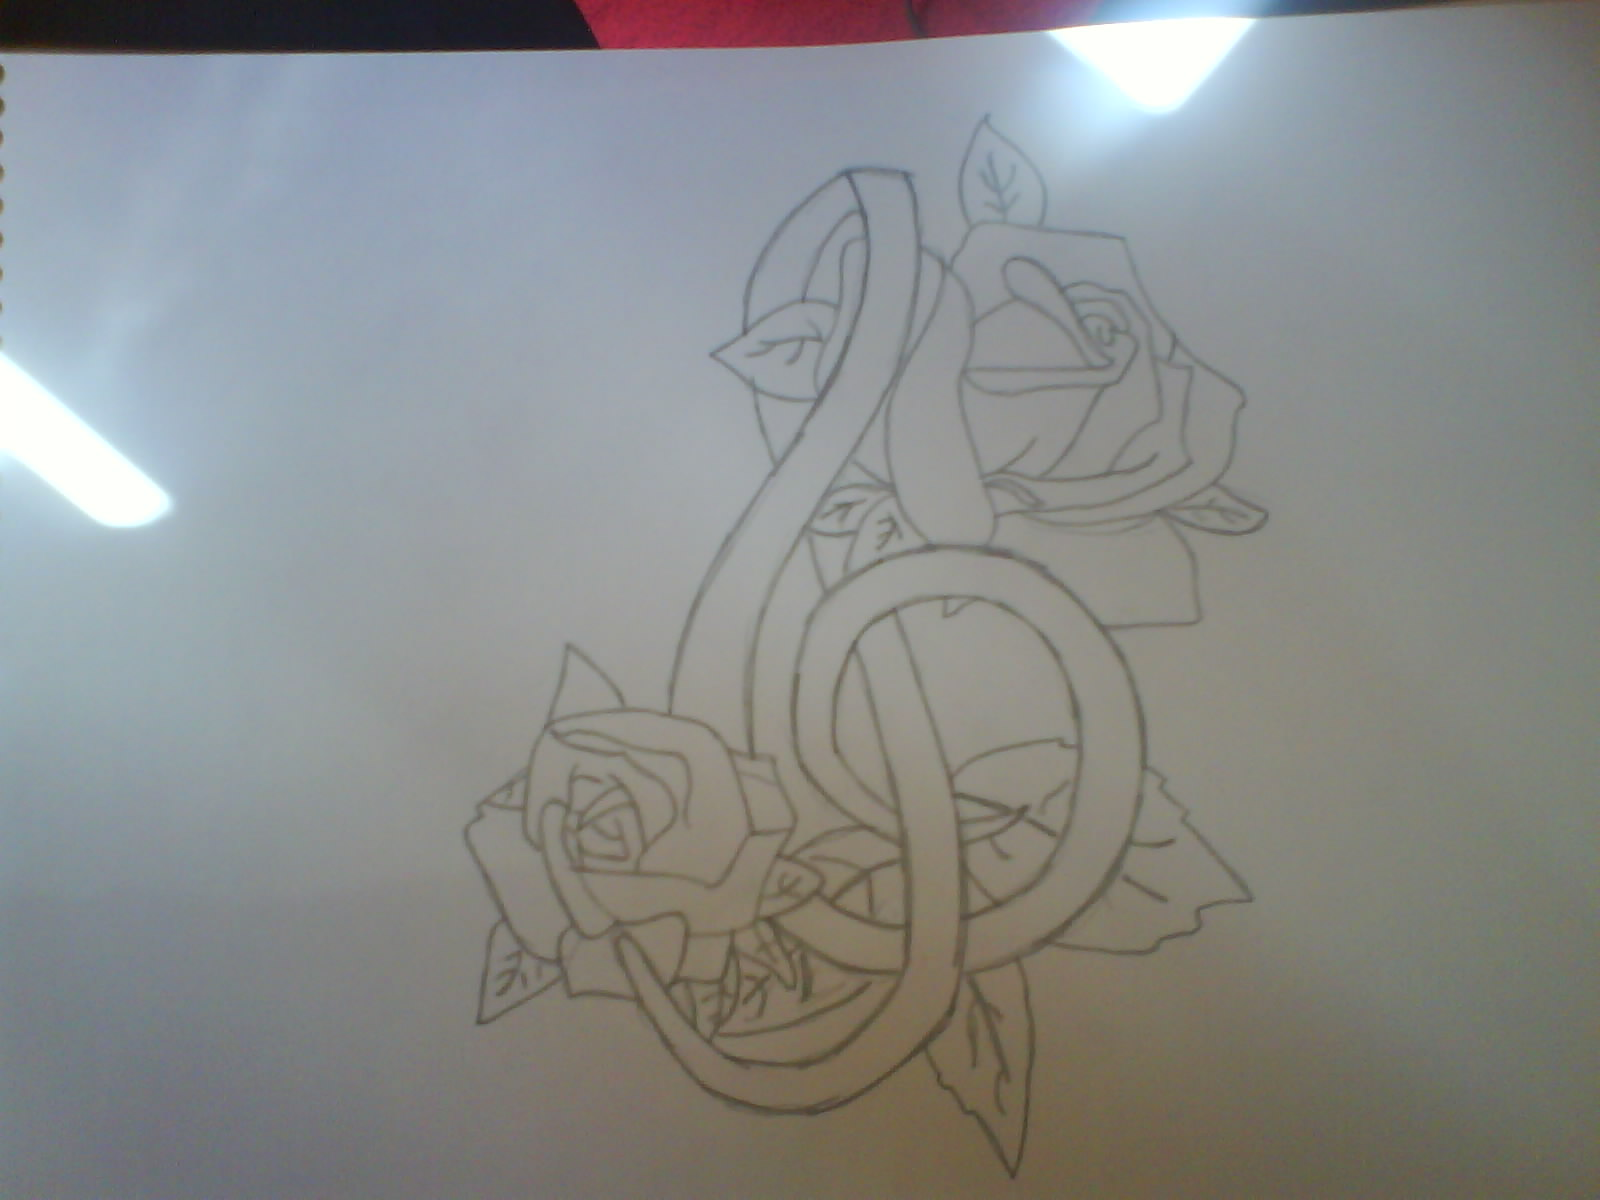 1600x1200 Musical Tattoos Music Symbol And Roses Tattoo By Plaistowkidd